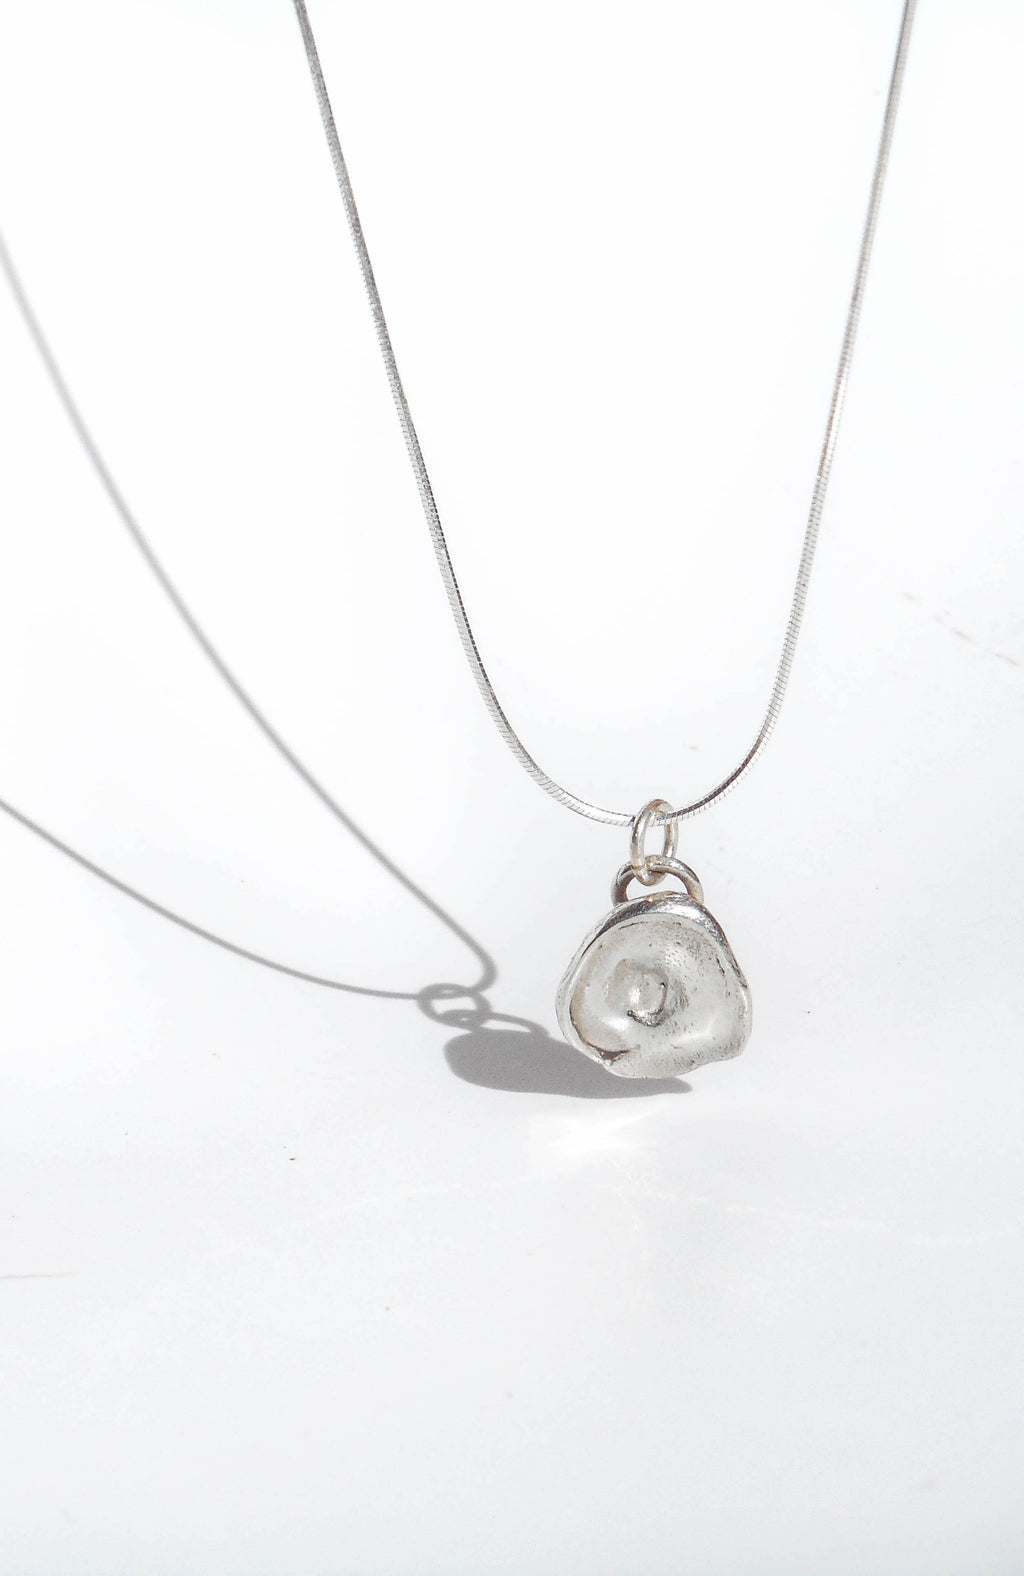 Sterling silver necklace with drop charm handmade in Puerto Rico